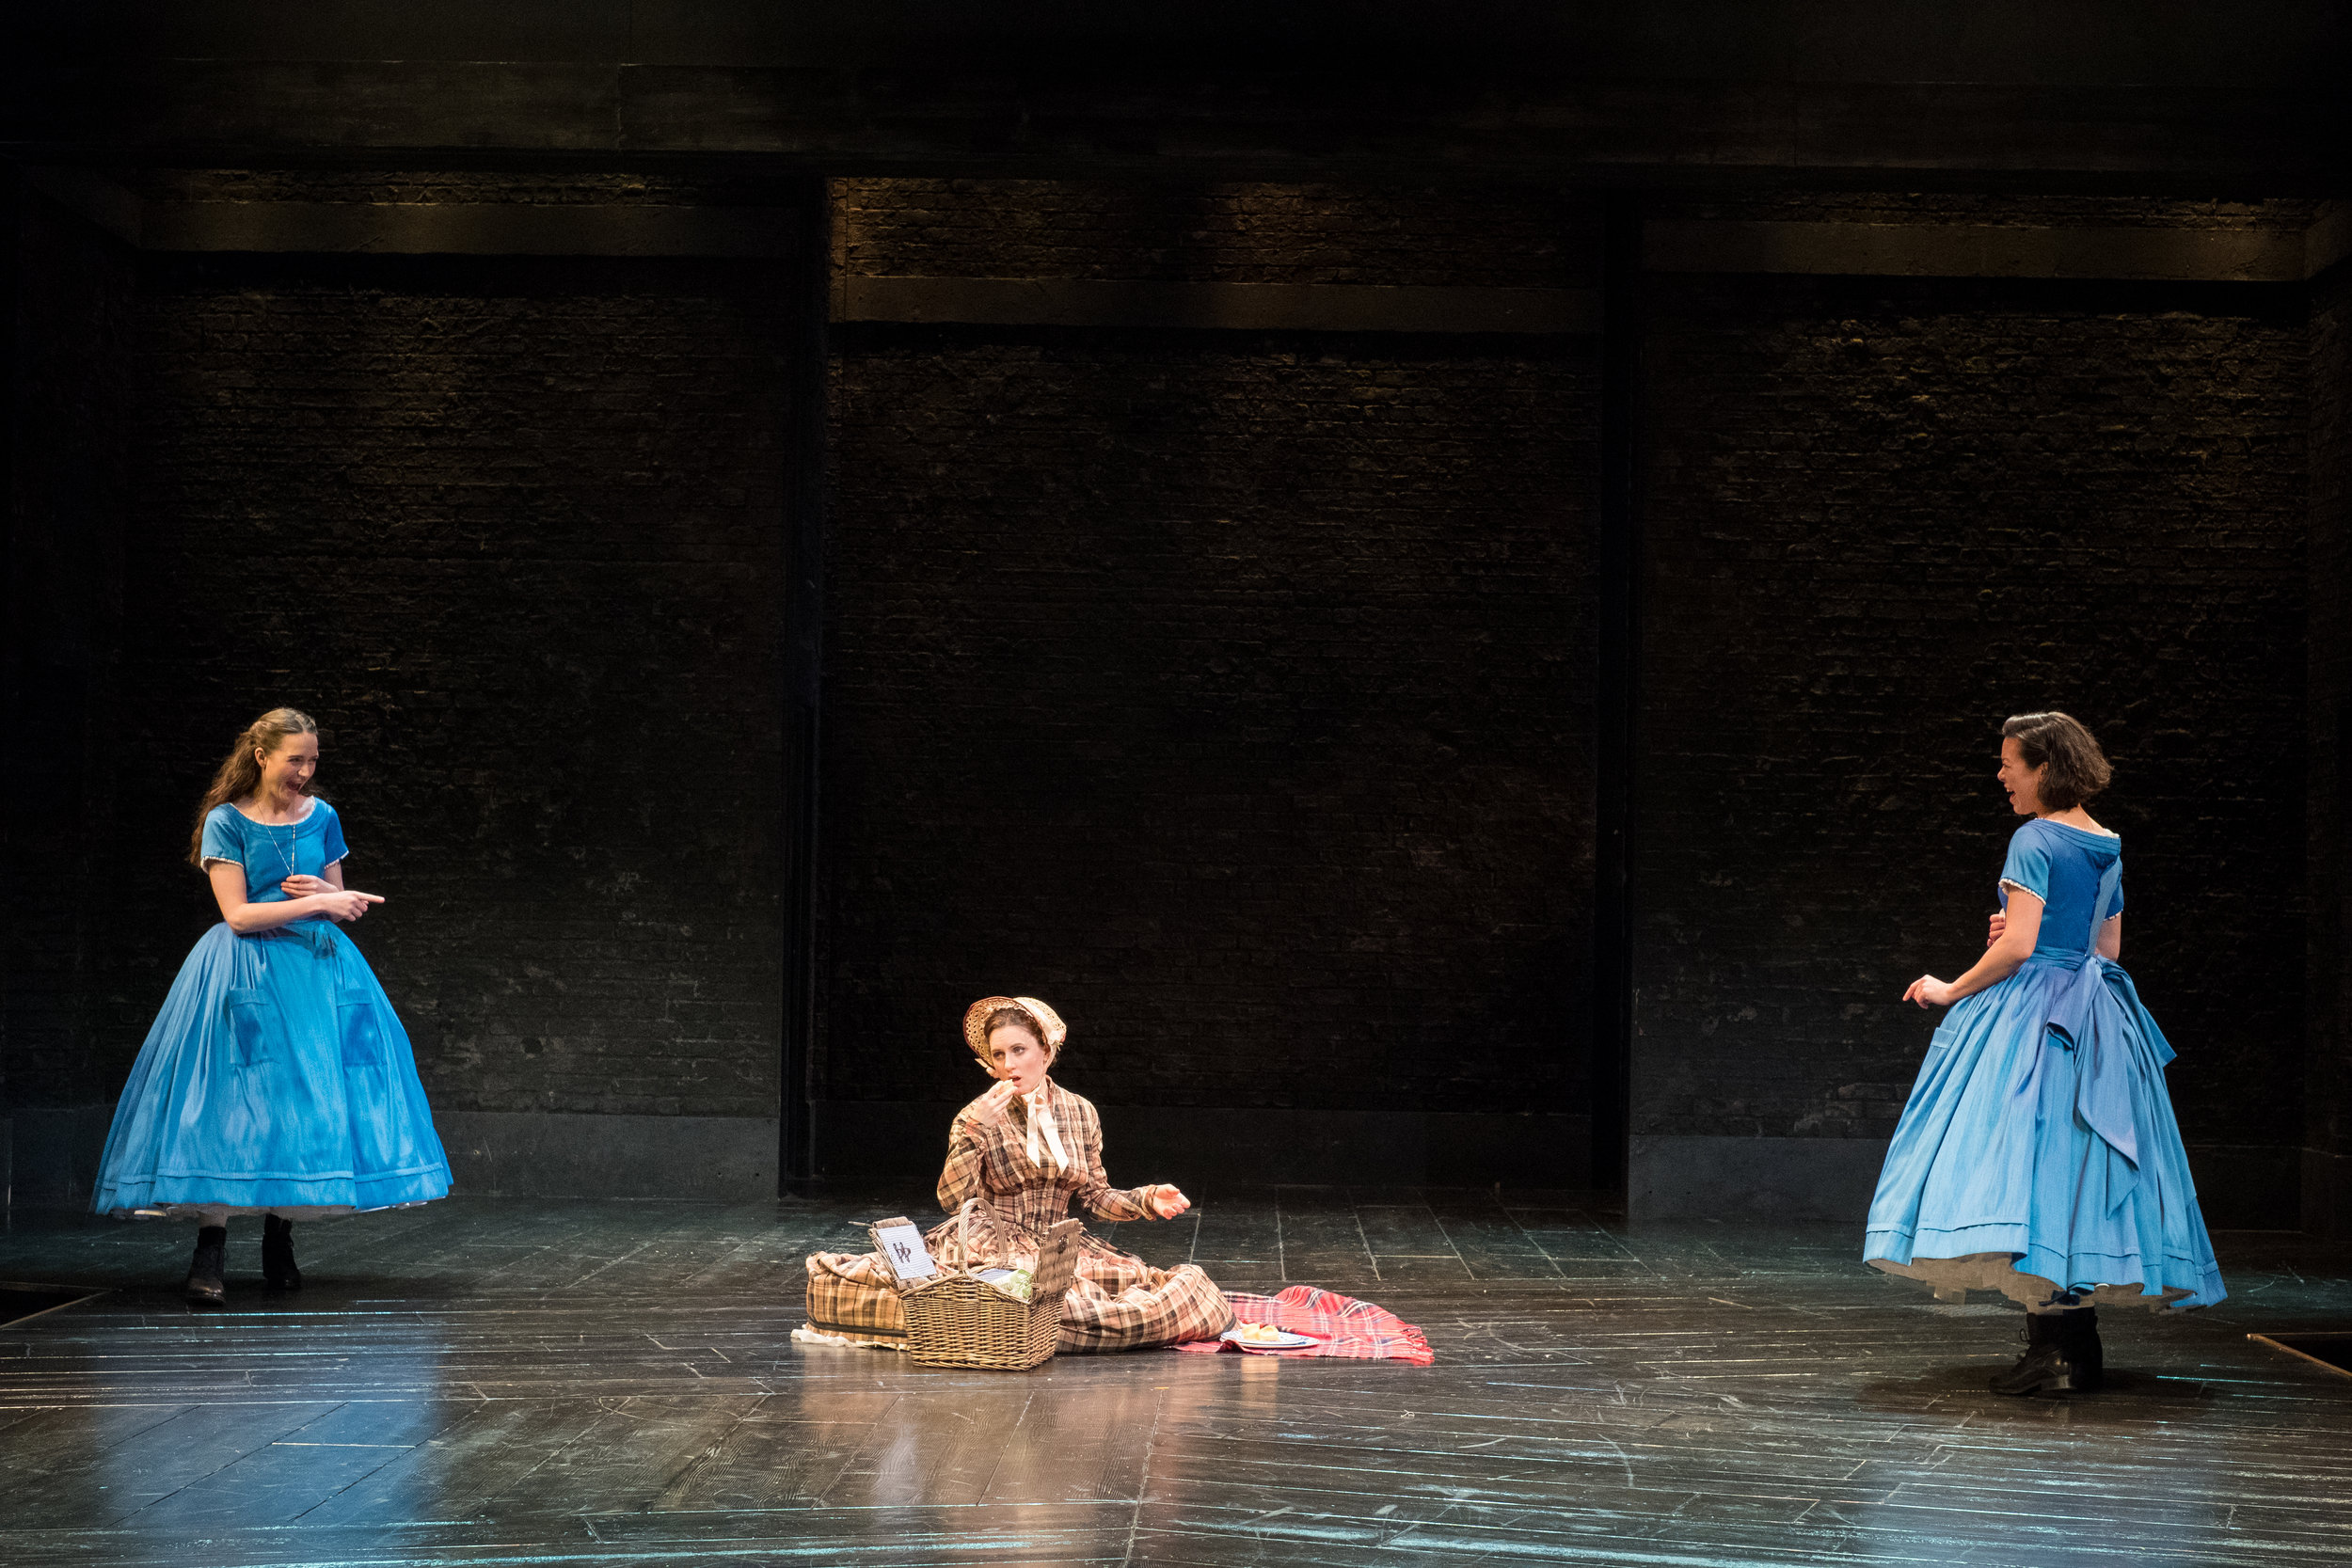 Anna Leong Brophy, Rebecca Birch & Barbara Hockaday in Alice in Wonderland, Storyhouse, composed by Jude Obermüller (photo by Mark McNulty)